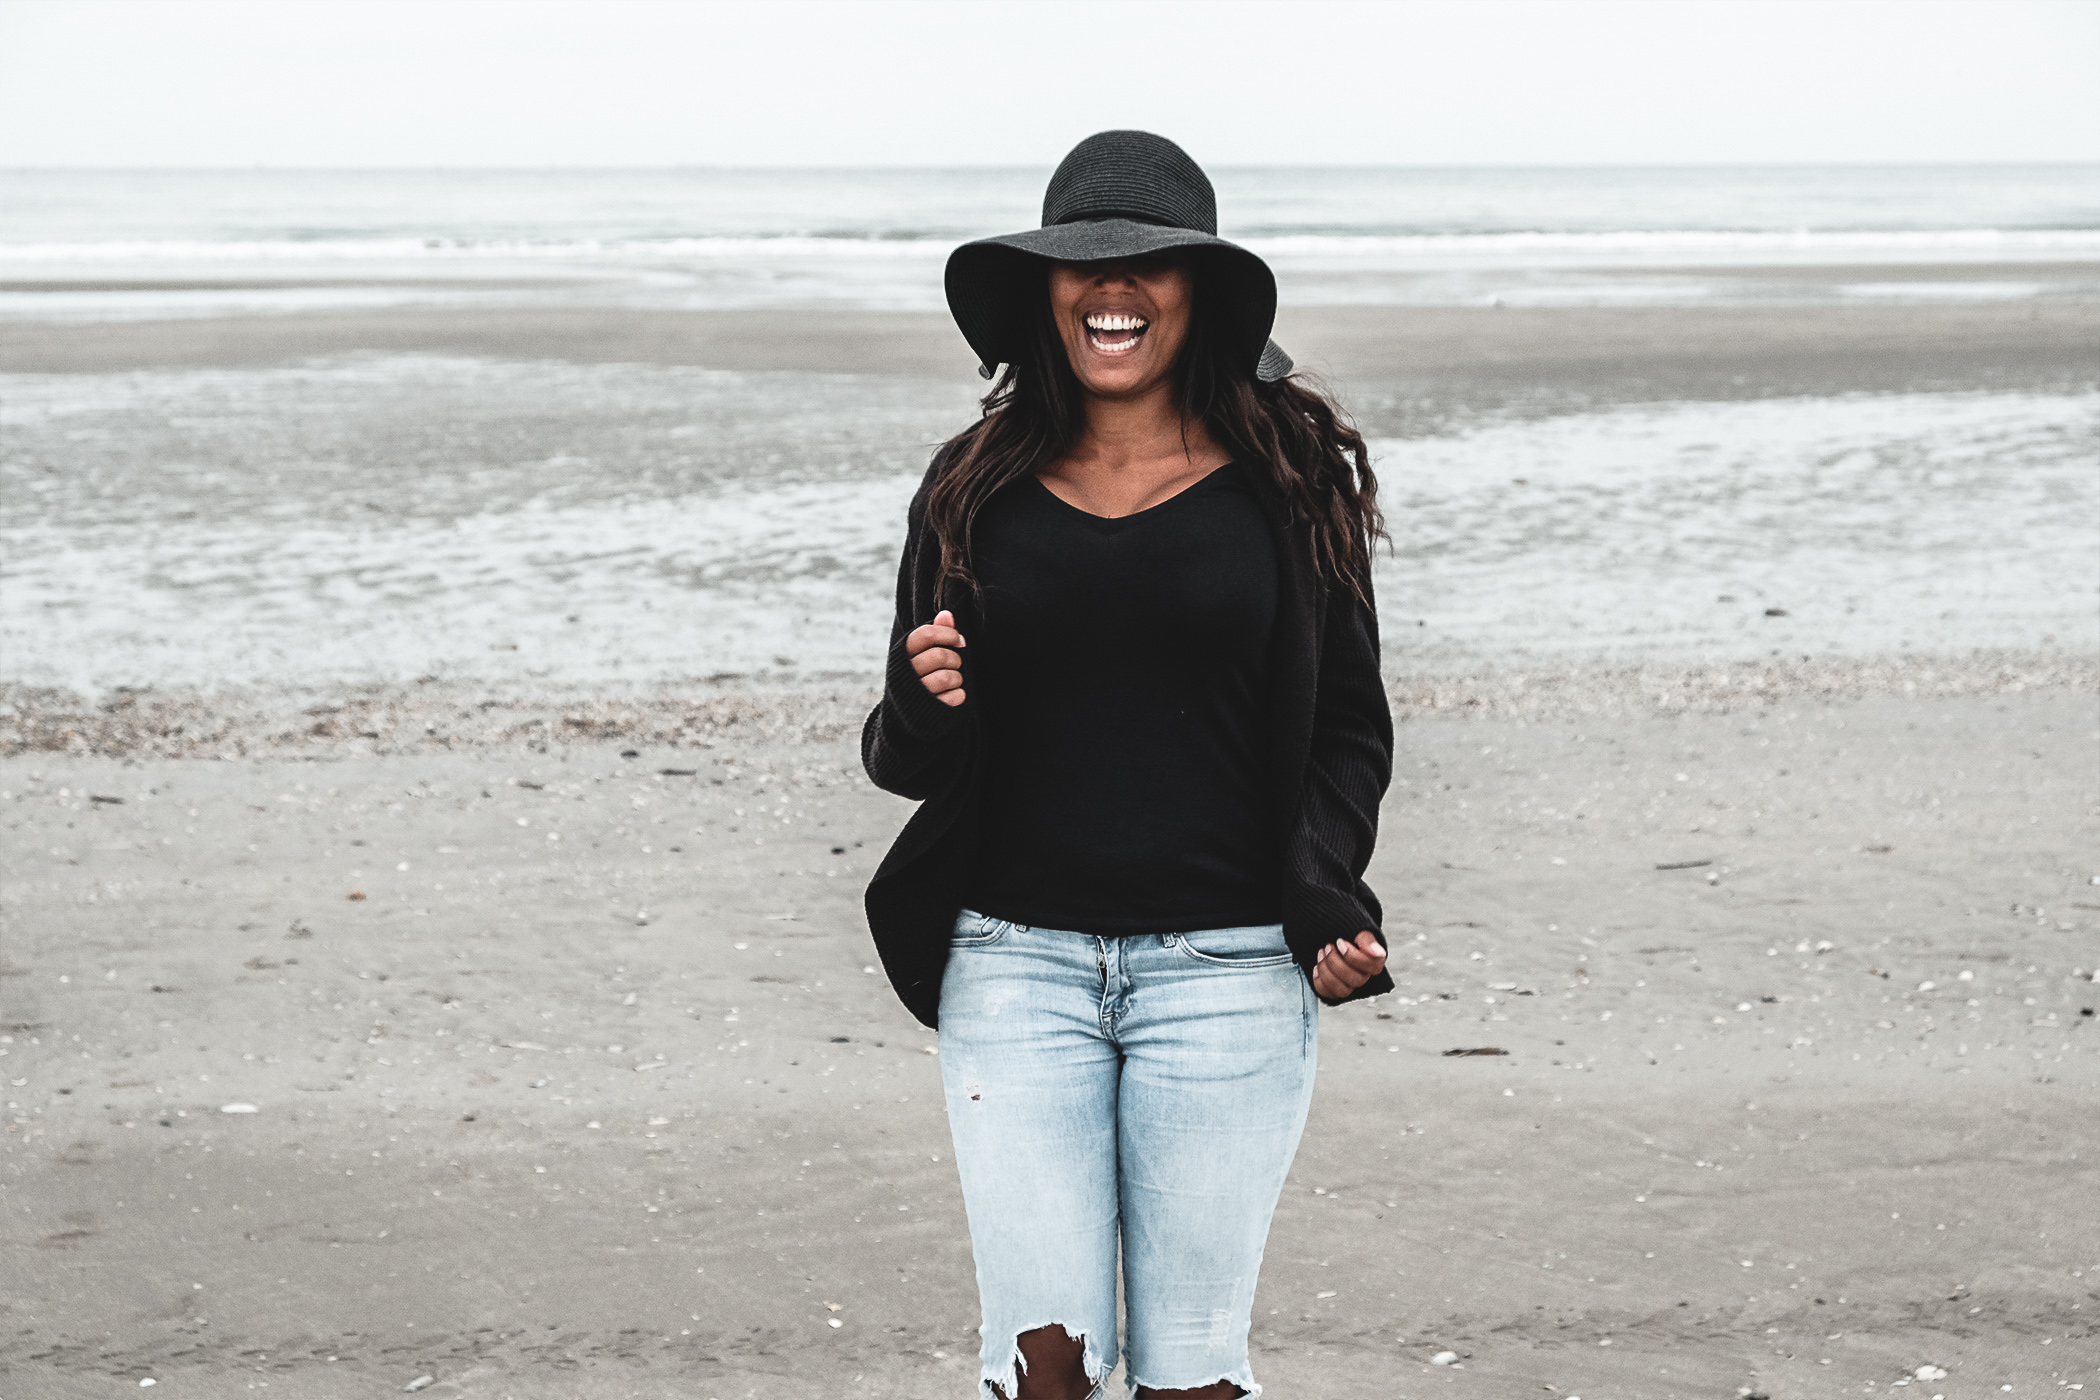 Travel girl at Deauville, Normandy France, laughing to the beach